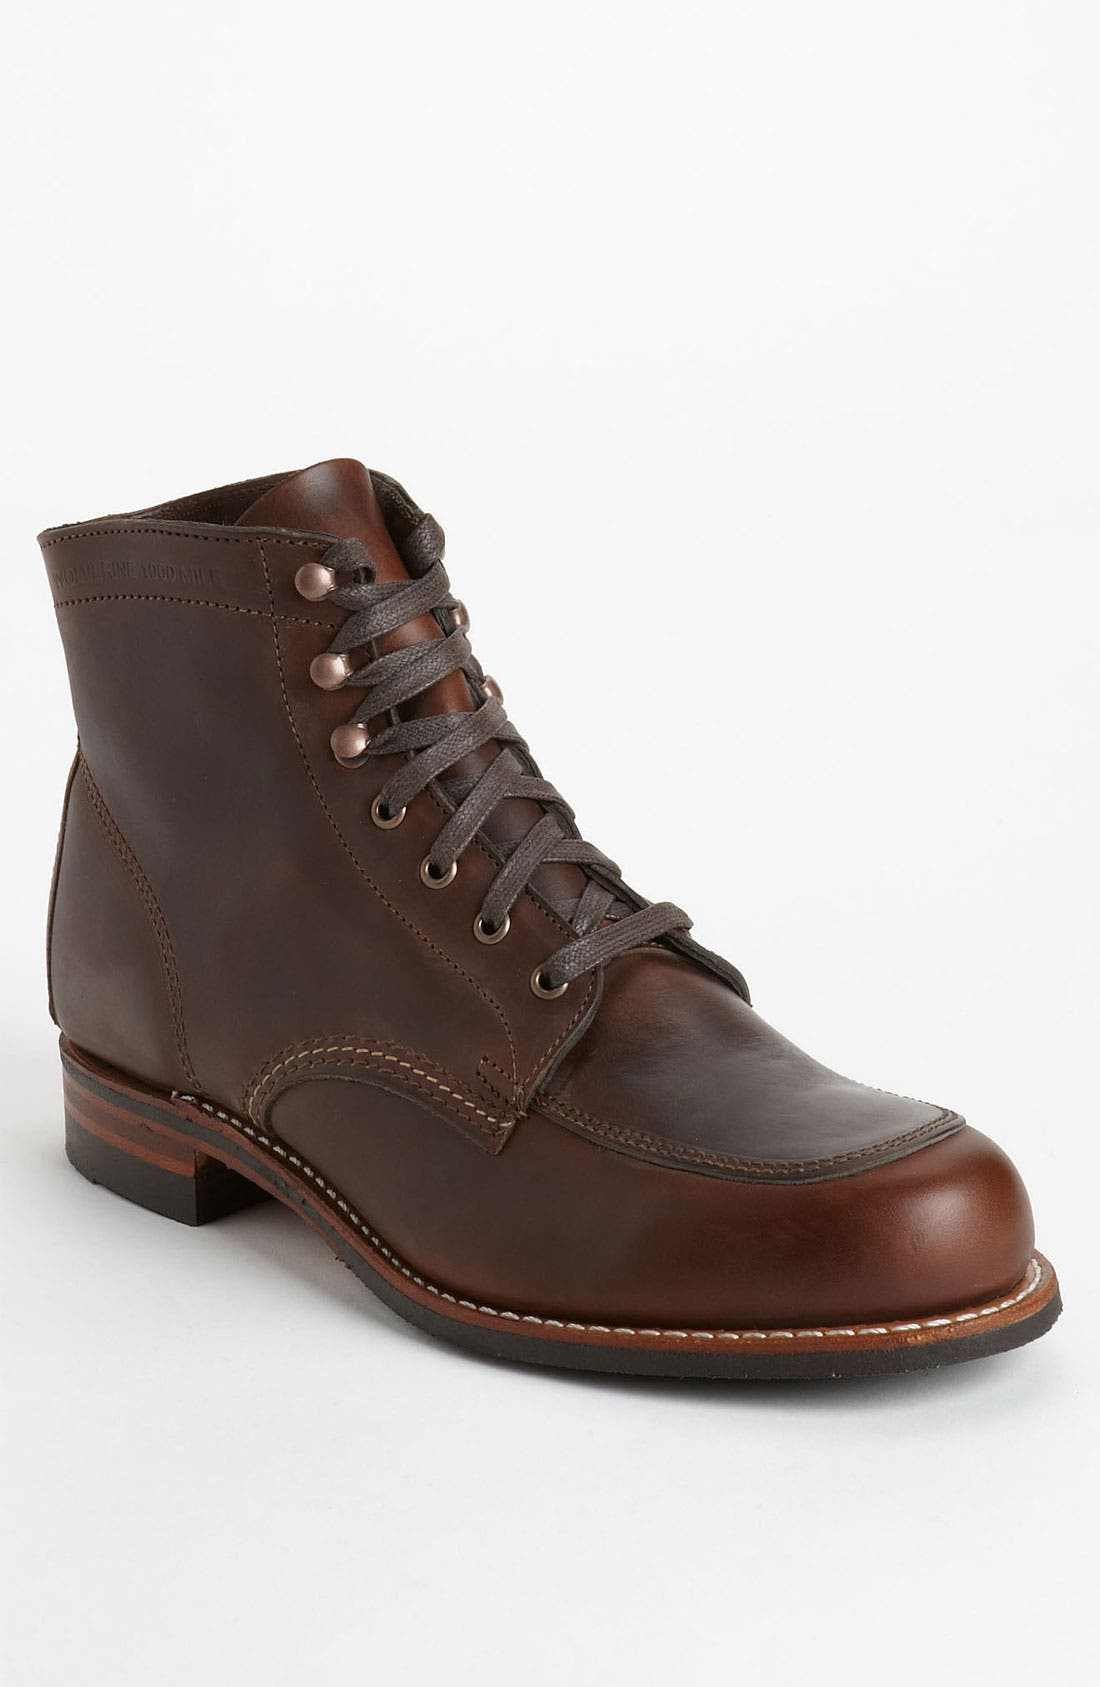 Main Image - Wolverine '1000 Mile - Courtland' Moc Toe Boot